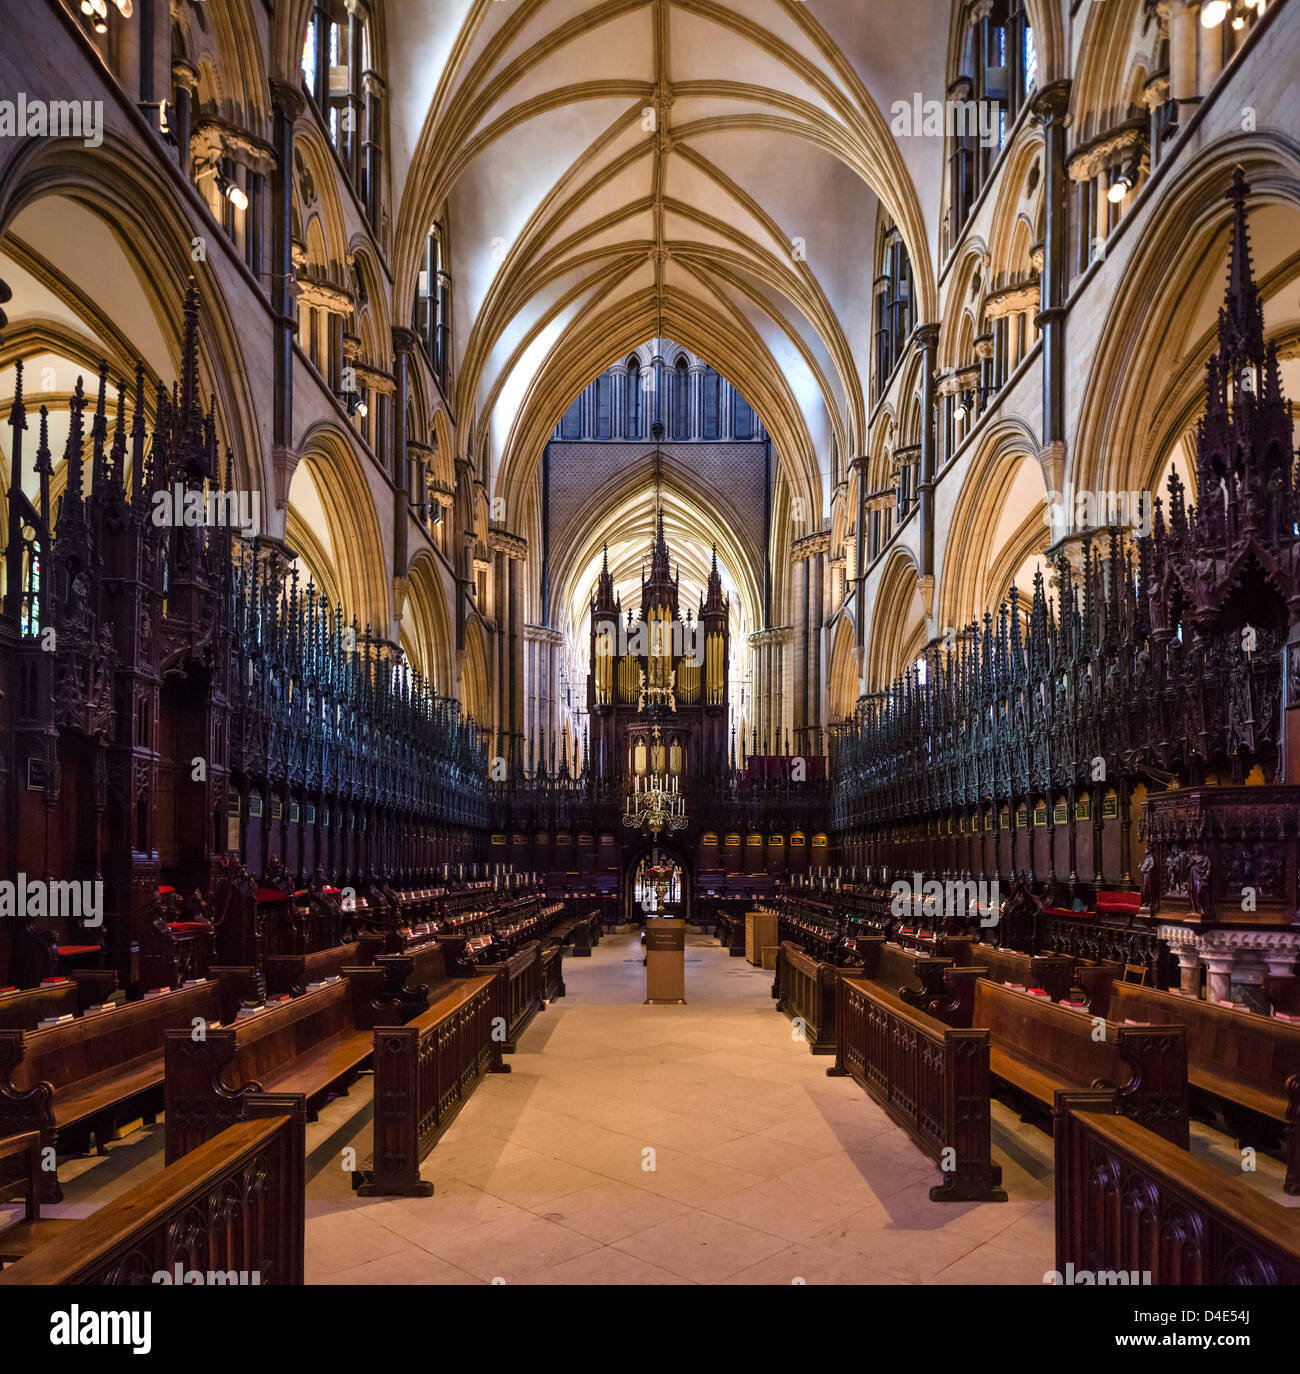 St Hugh's Choir in Lincoln Cathedral, Lincoln, Lincolnshire, East Midlands, UK Stock Photo